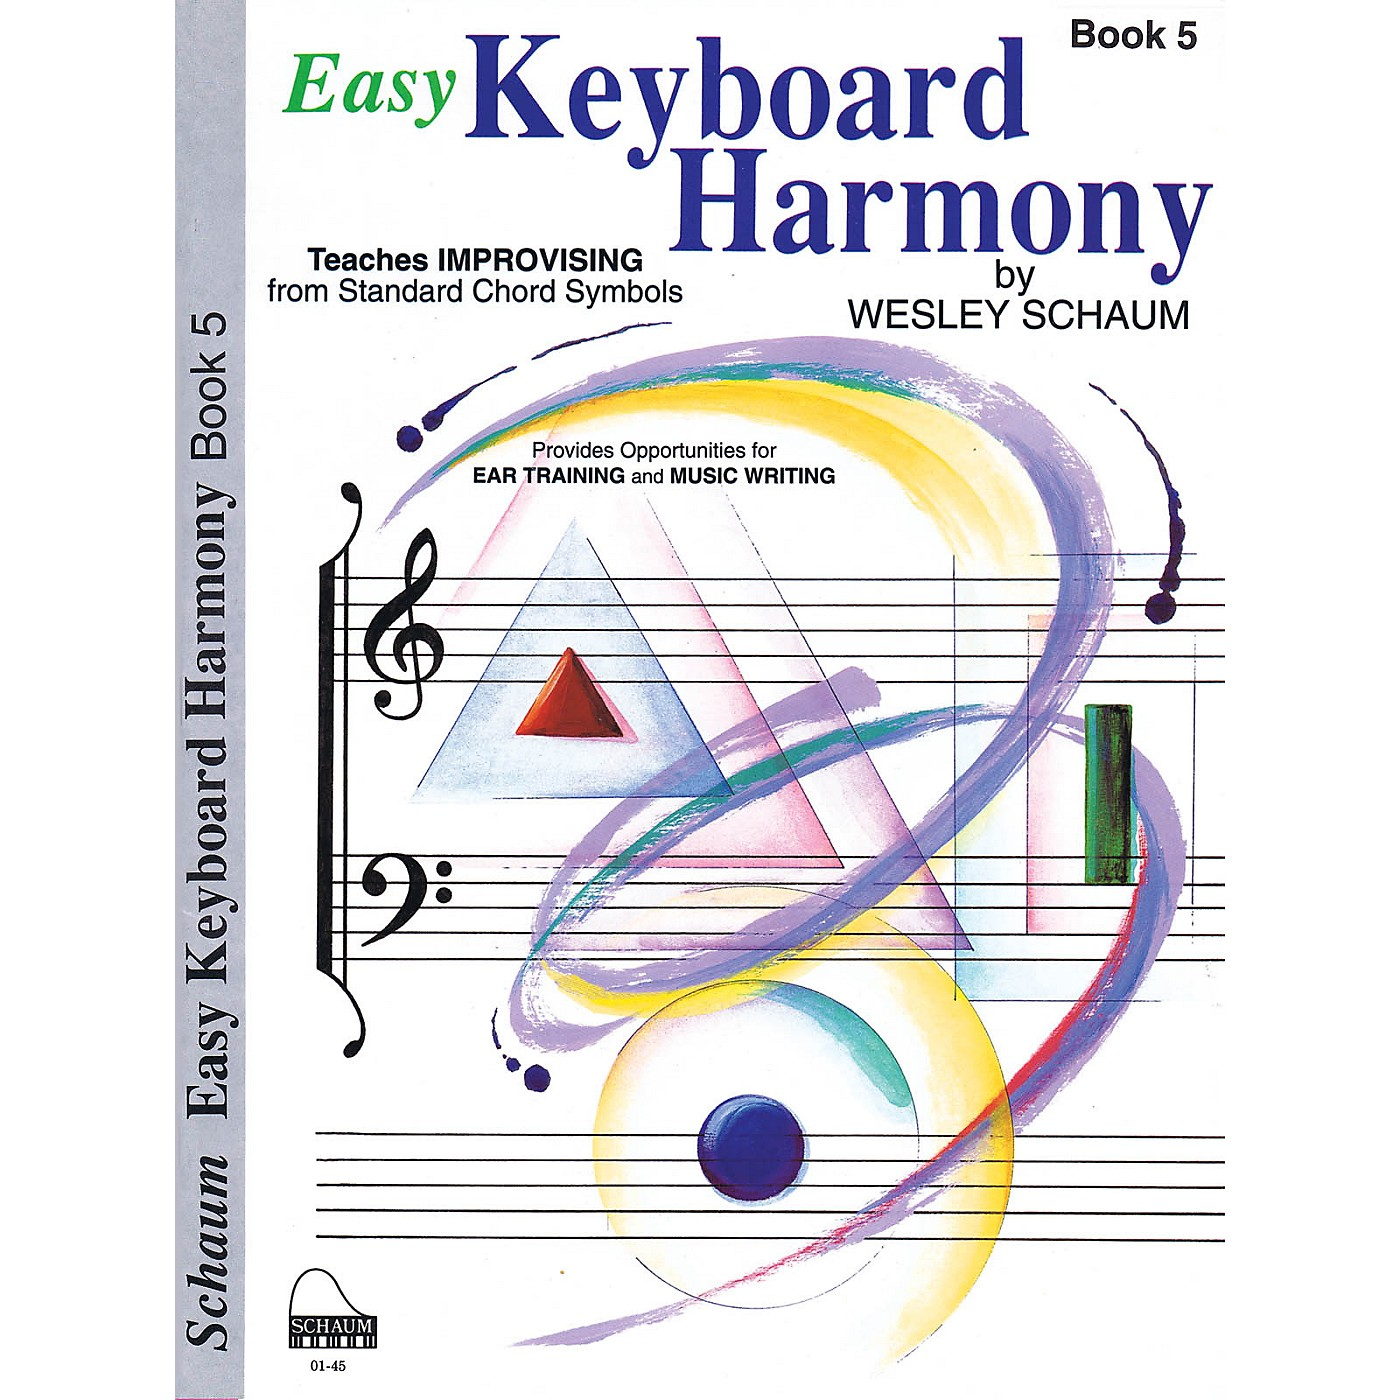 SCHAUM Easy Keyboard Harmony (Book 5 Early Advanced Level) Educational Piano Book by Wesley Schaum thumbnail